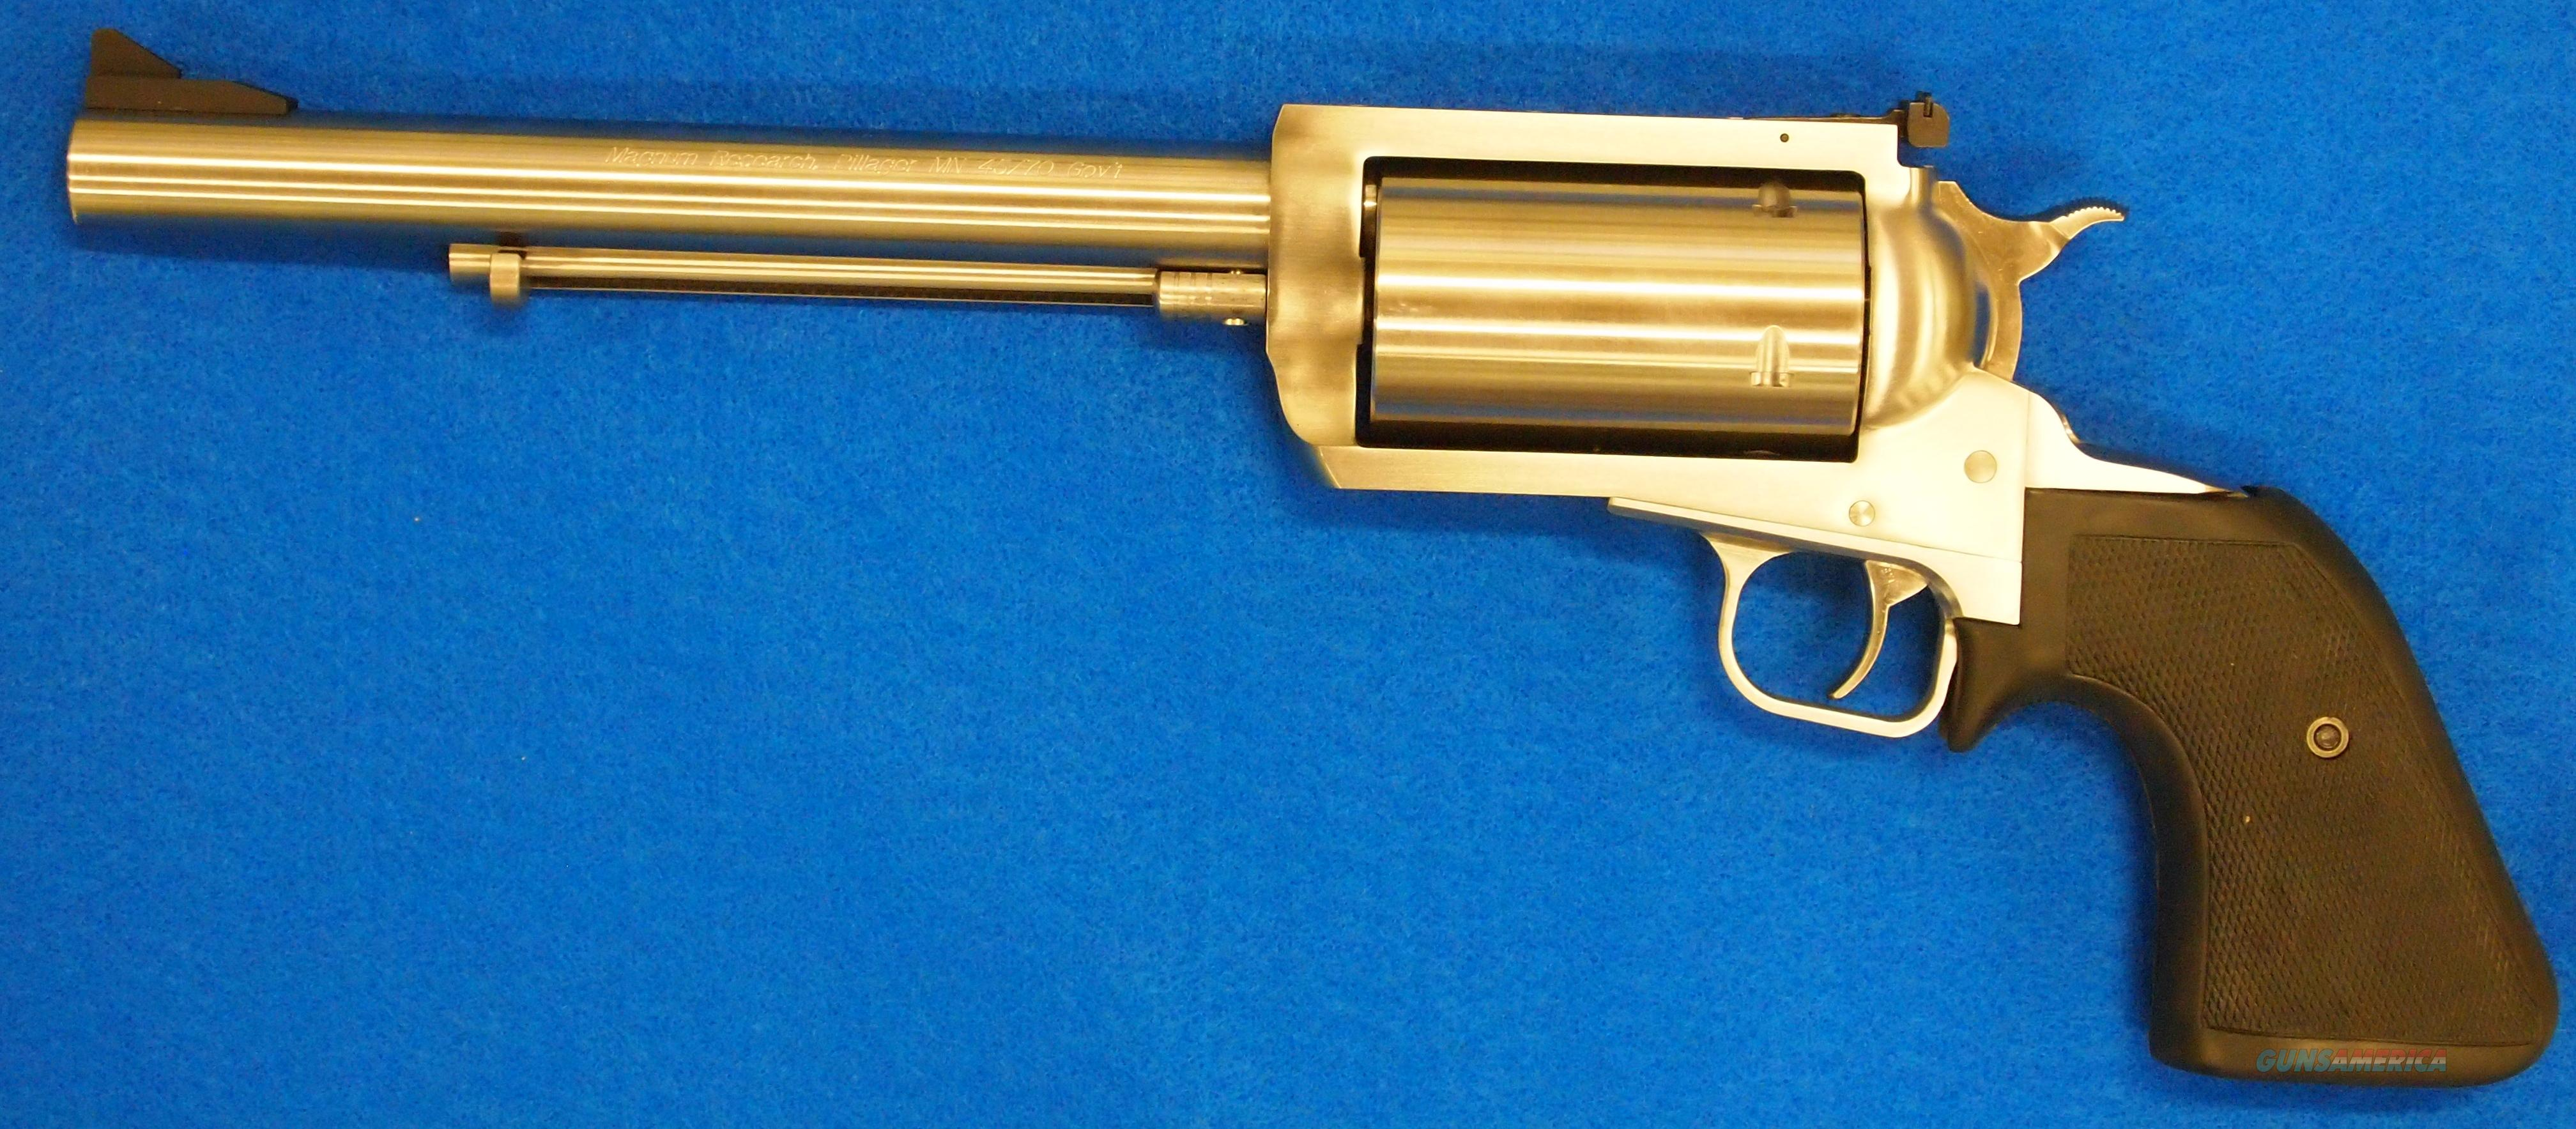 Magnum Research Bfr 45 70 For Sale